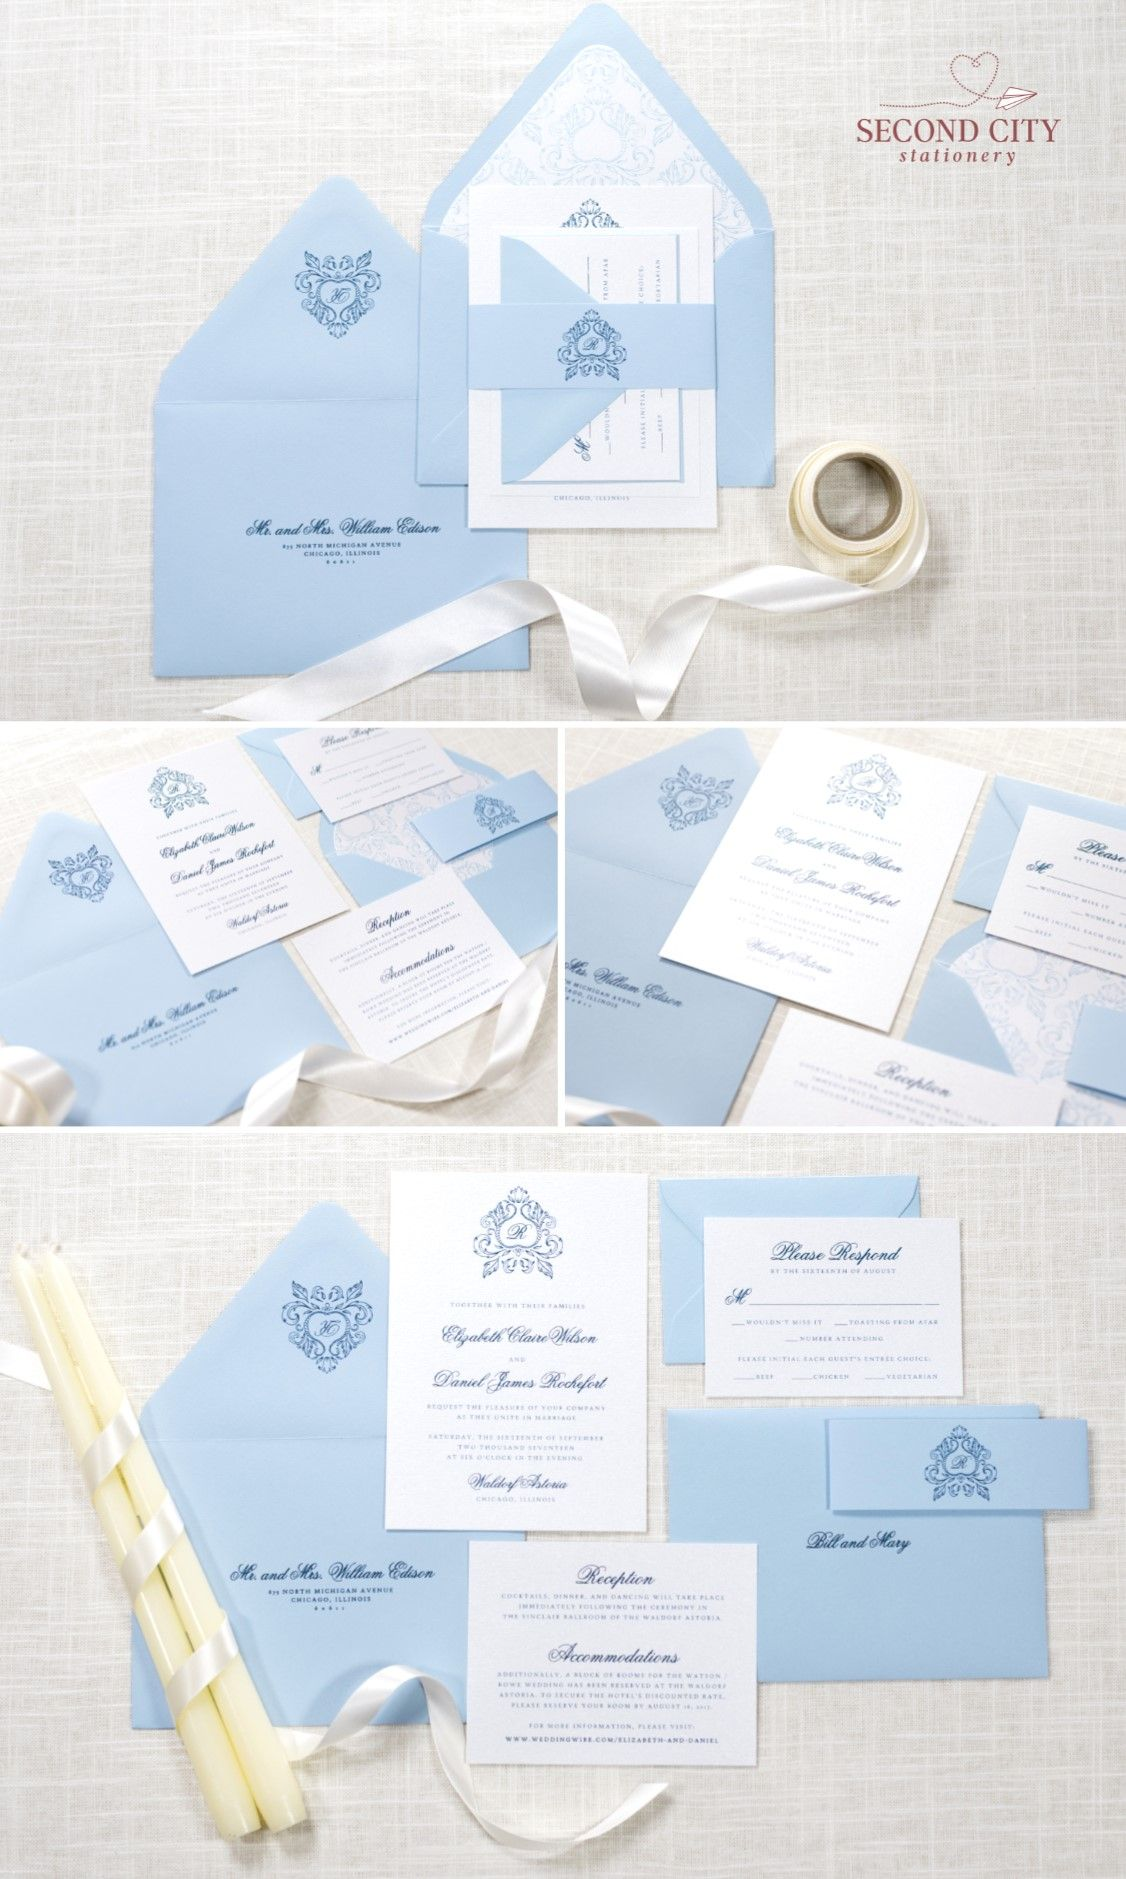 Pale Serenity Blue And Ice Silver Wedding Invitation With Ornate